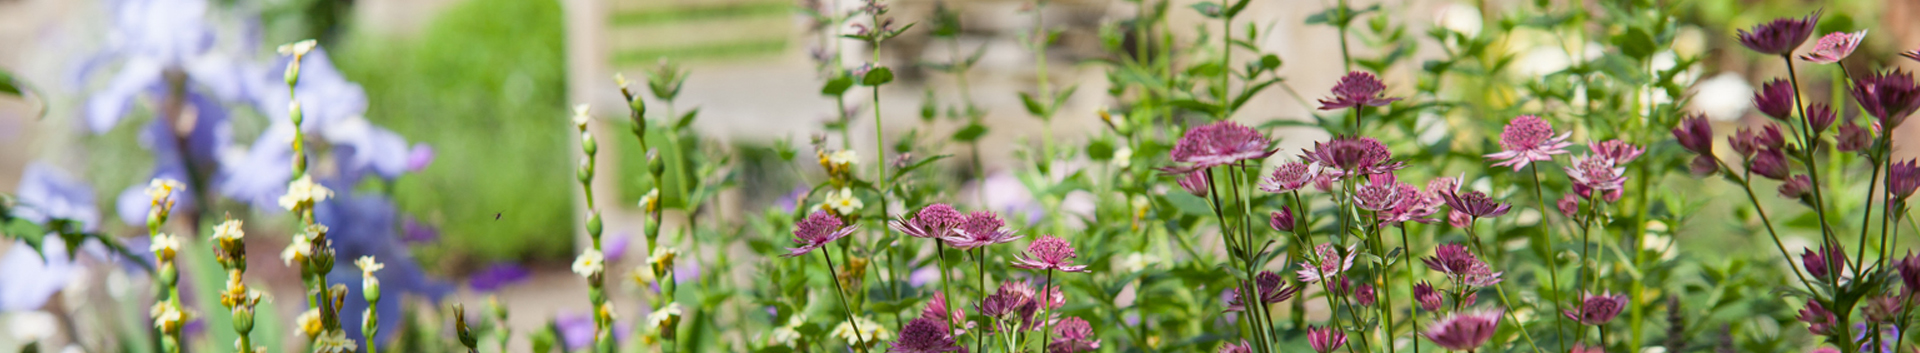 About Polley Garden Design - Mixed planting with Astrantia